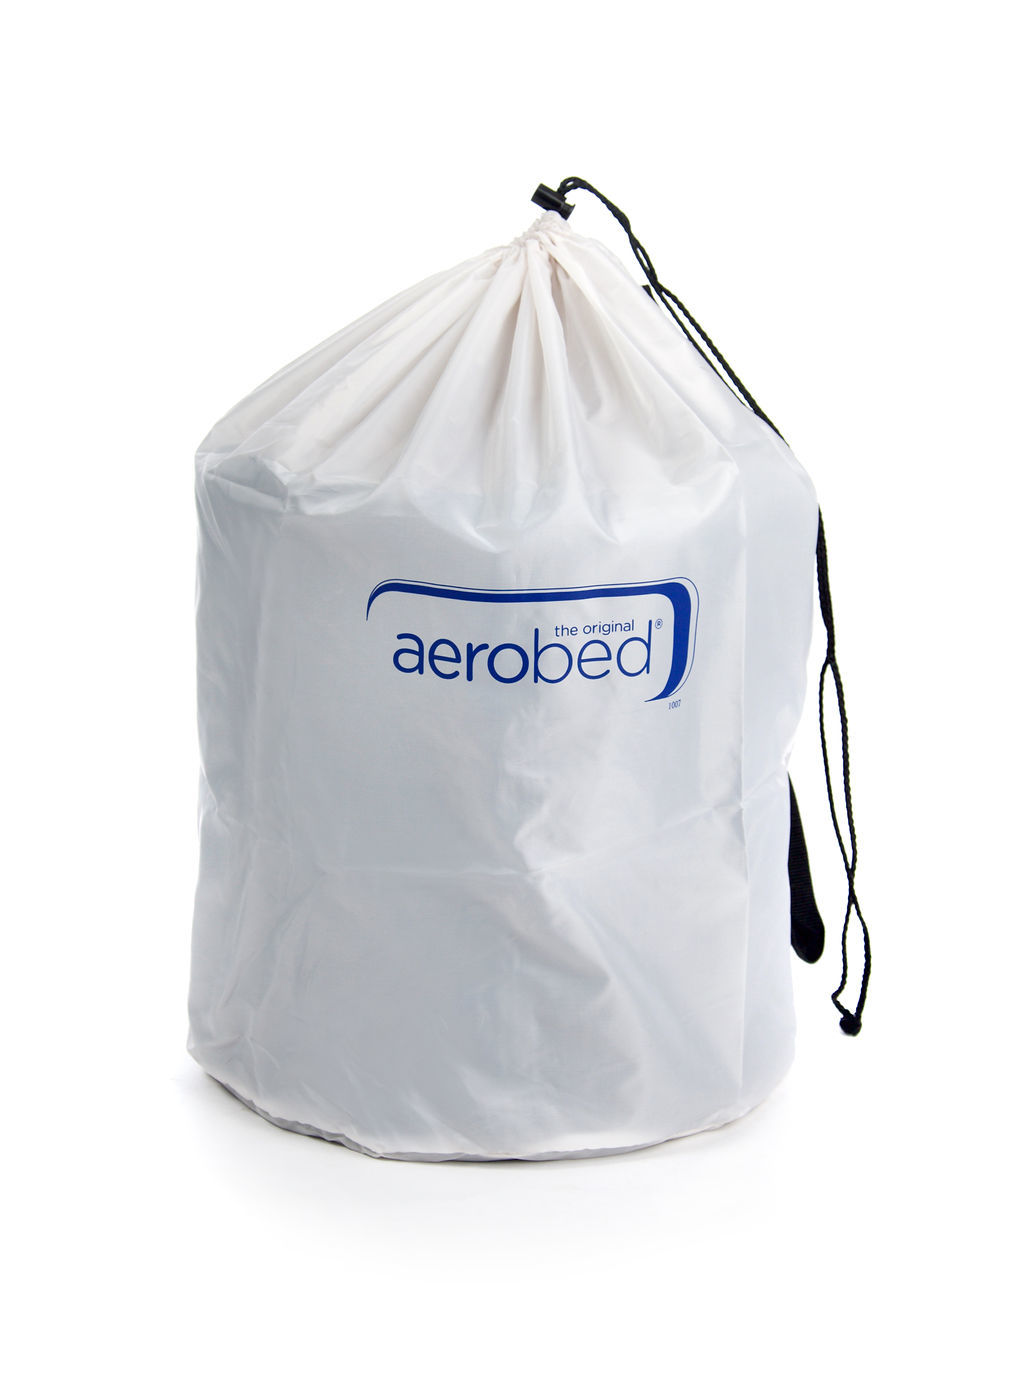 Aerobed Single Air Mattress with carry bag included